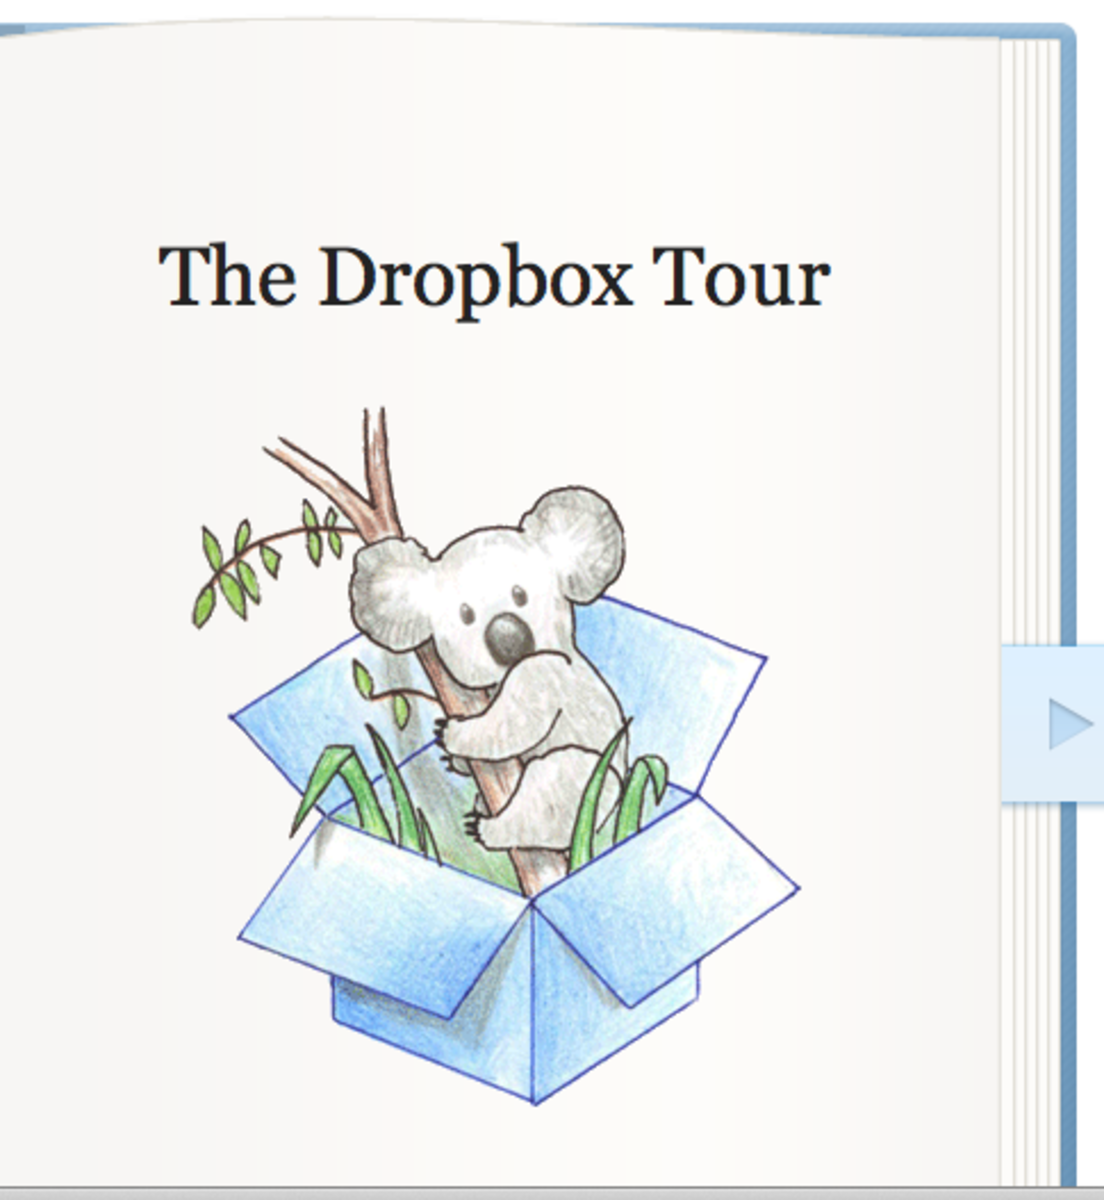 A screenshot of the first page in the online tour